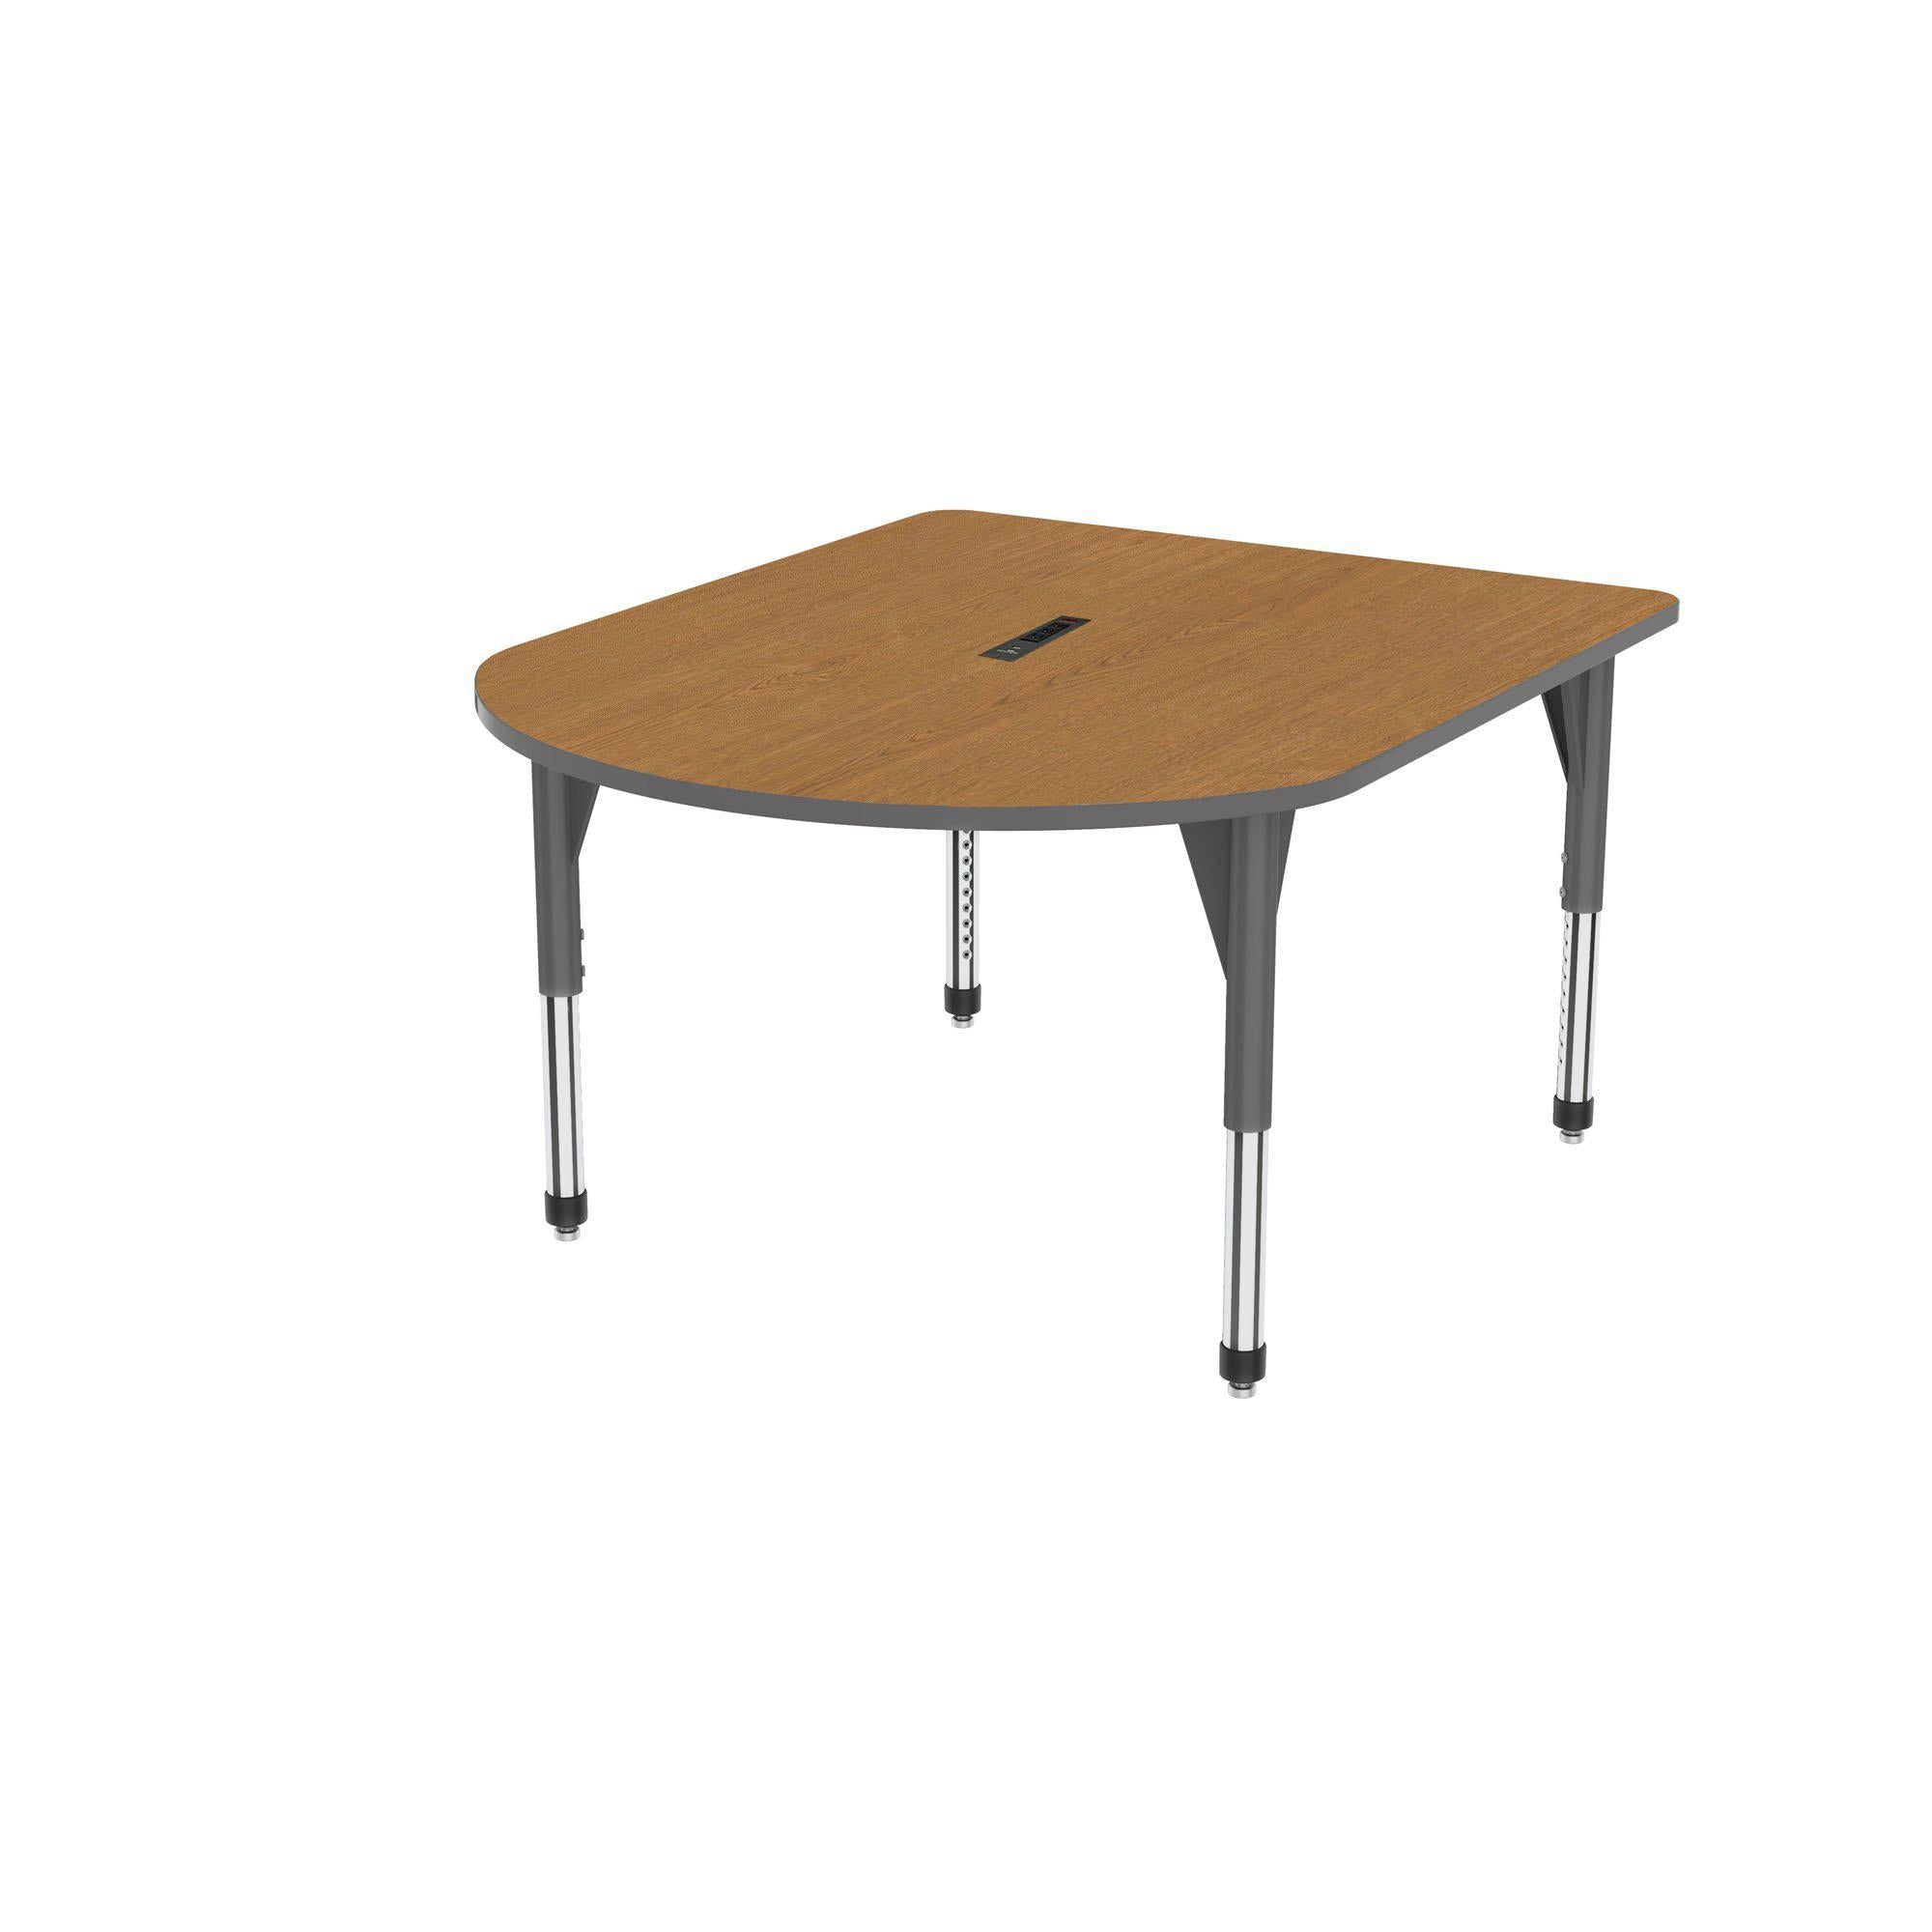 "Premier Series Multimedia Tables with Power Module, 48"" x 60""-Tables-Sitting (21"" - 31"")-Solar Oak/Gray-Grey"